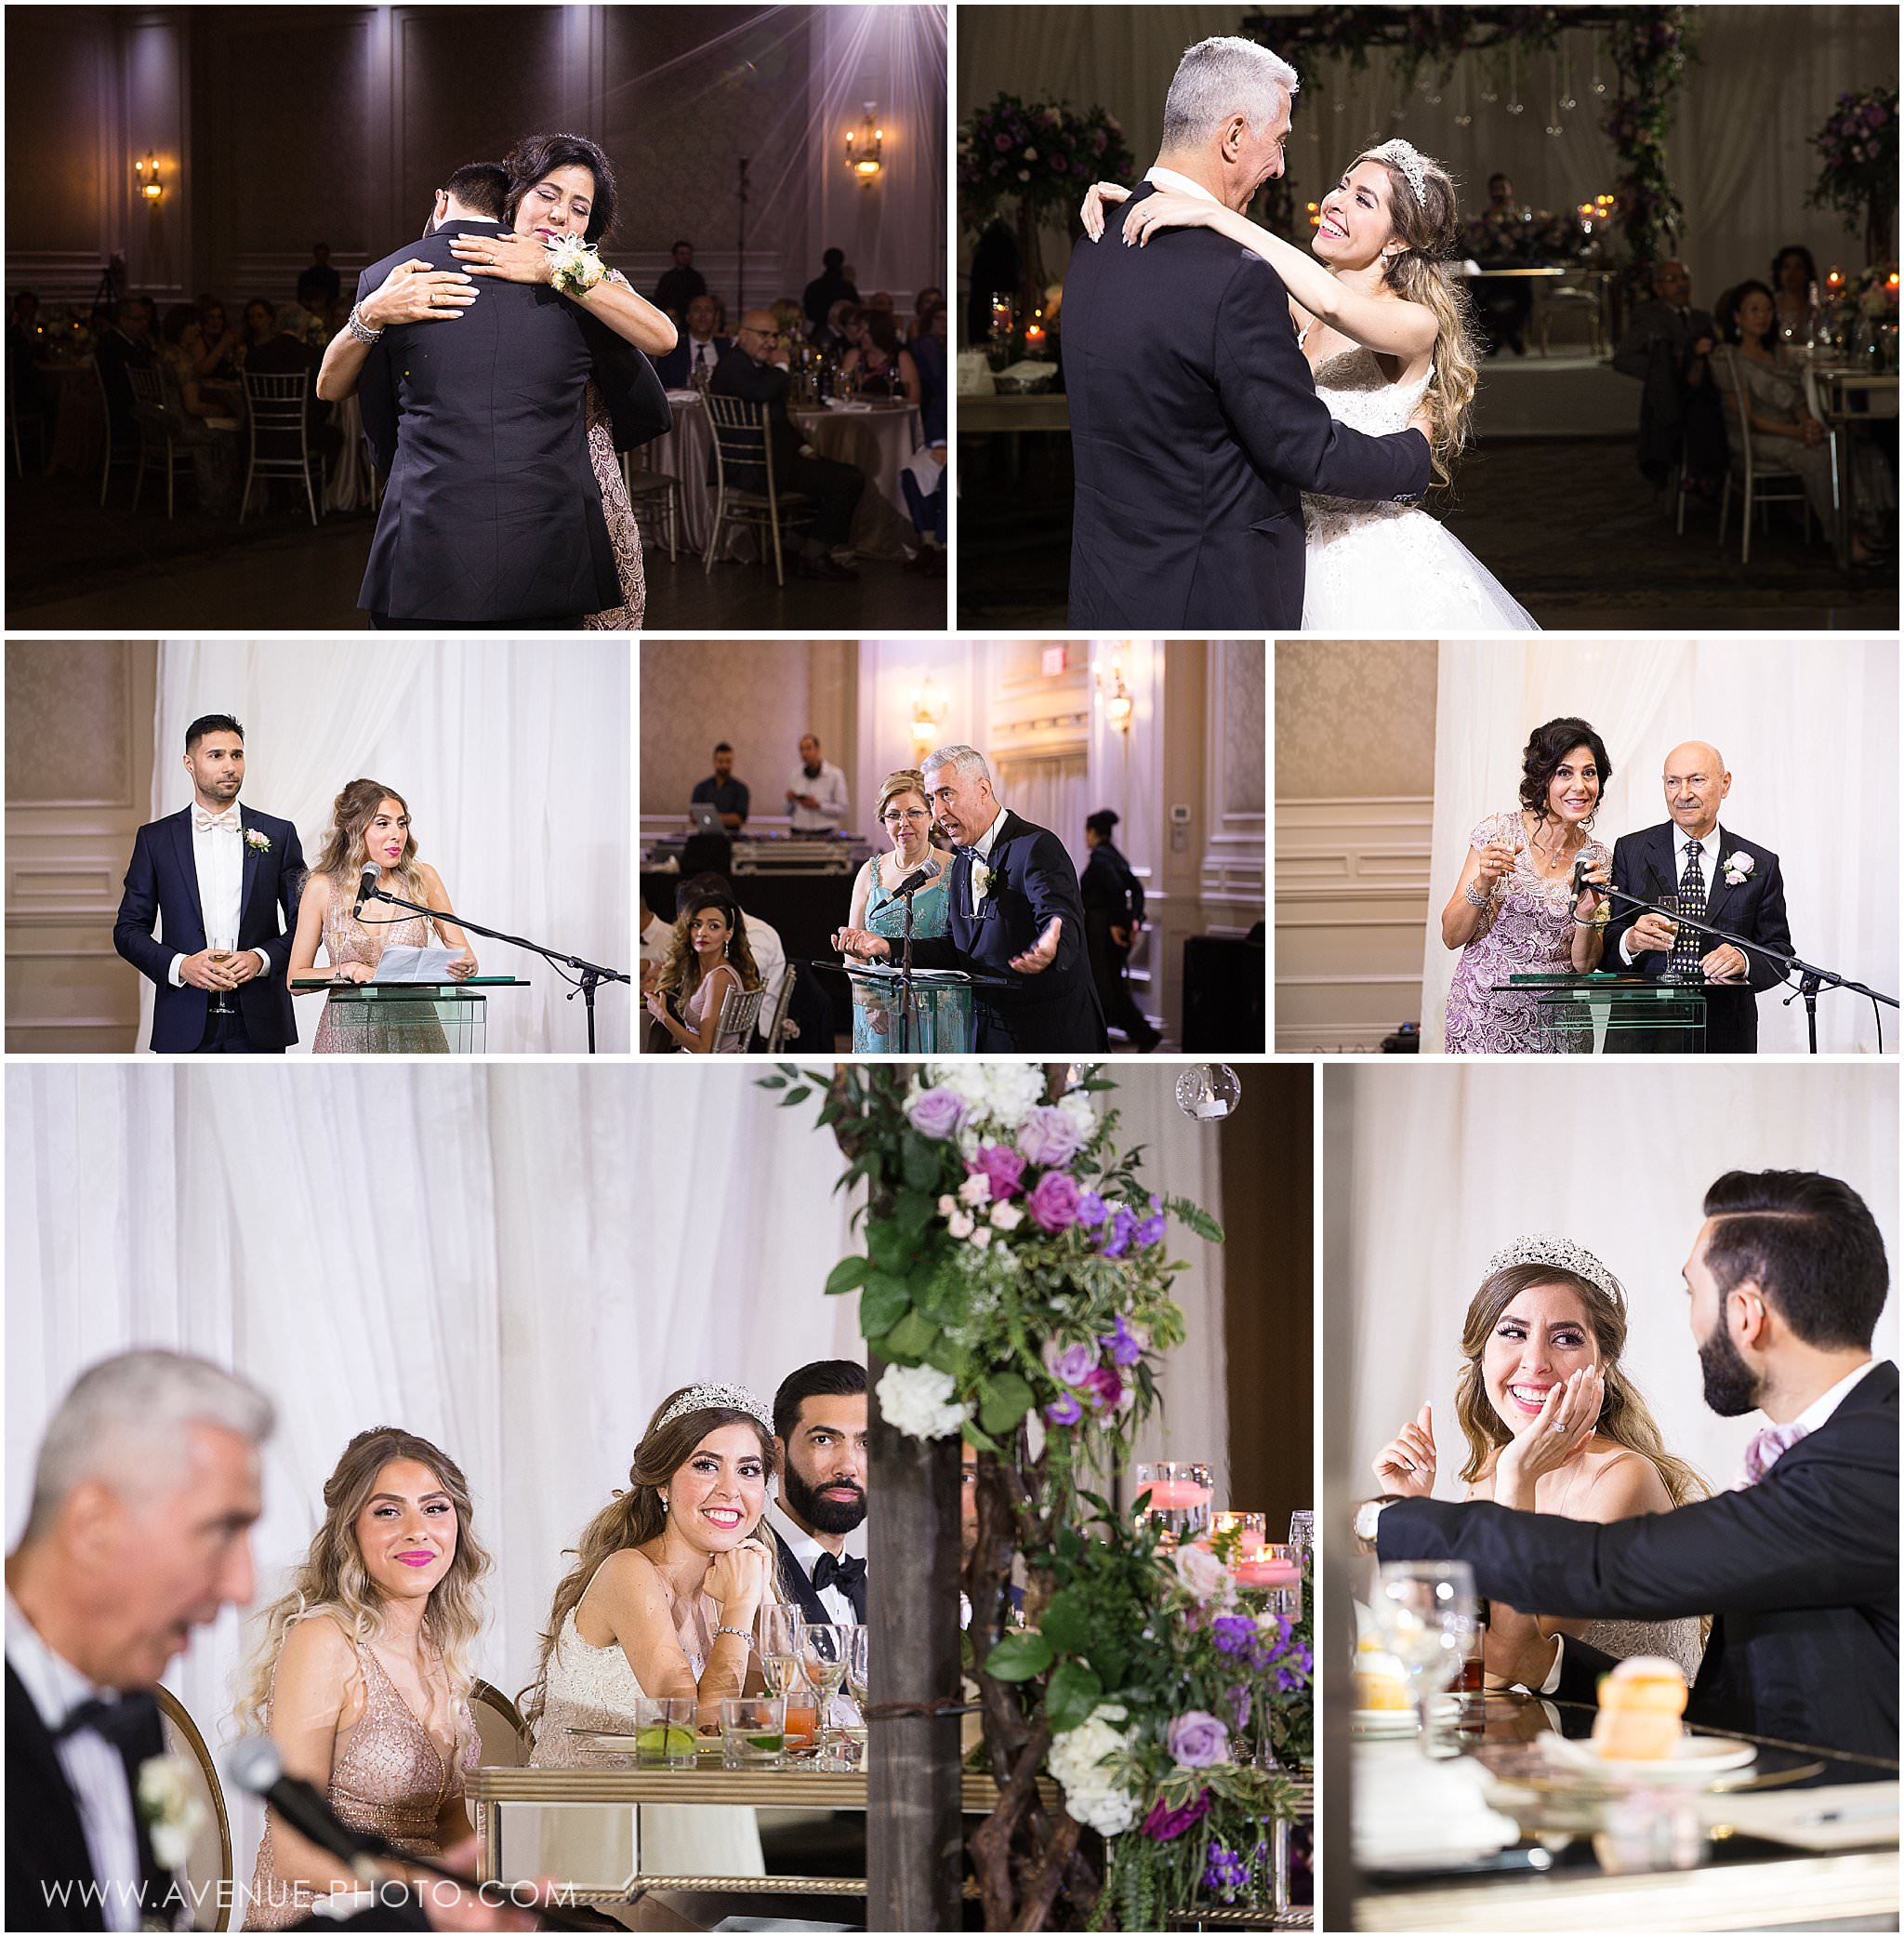 Hazelton Manor Wedding photos, Avenue photo